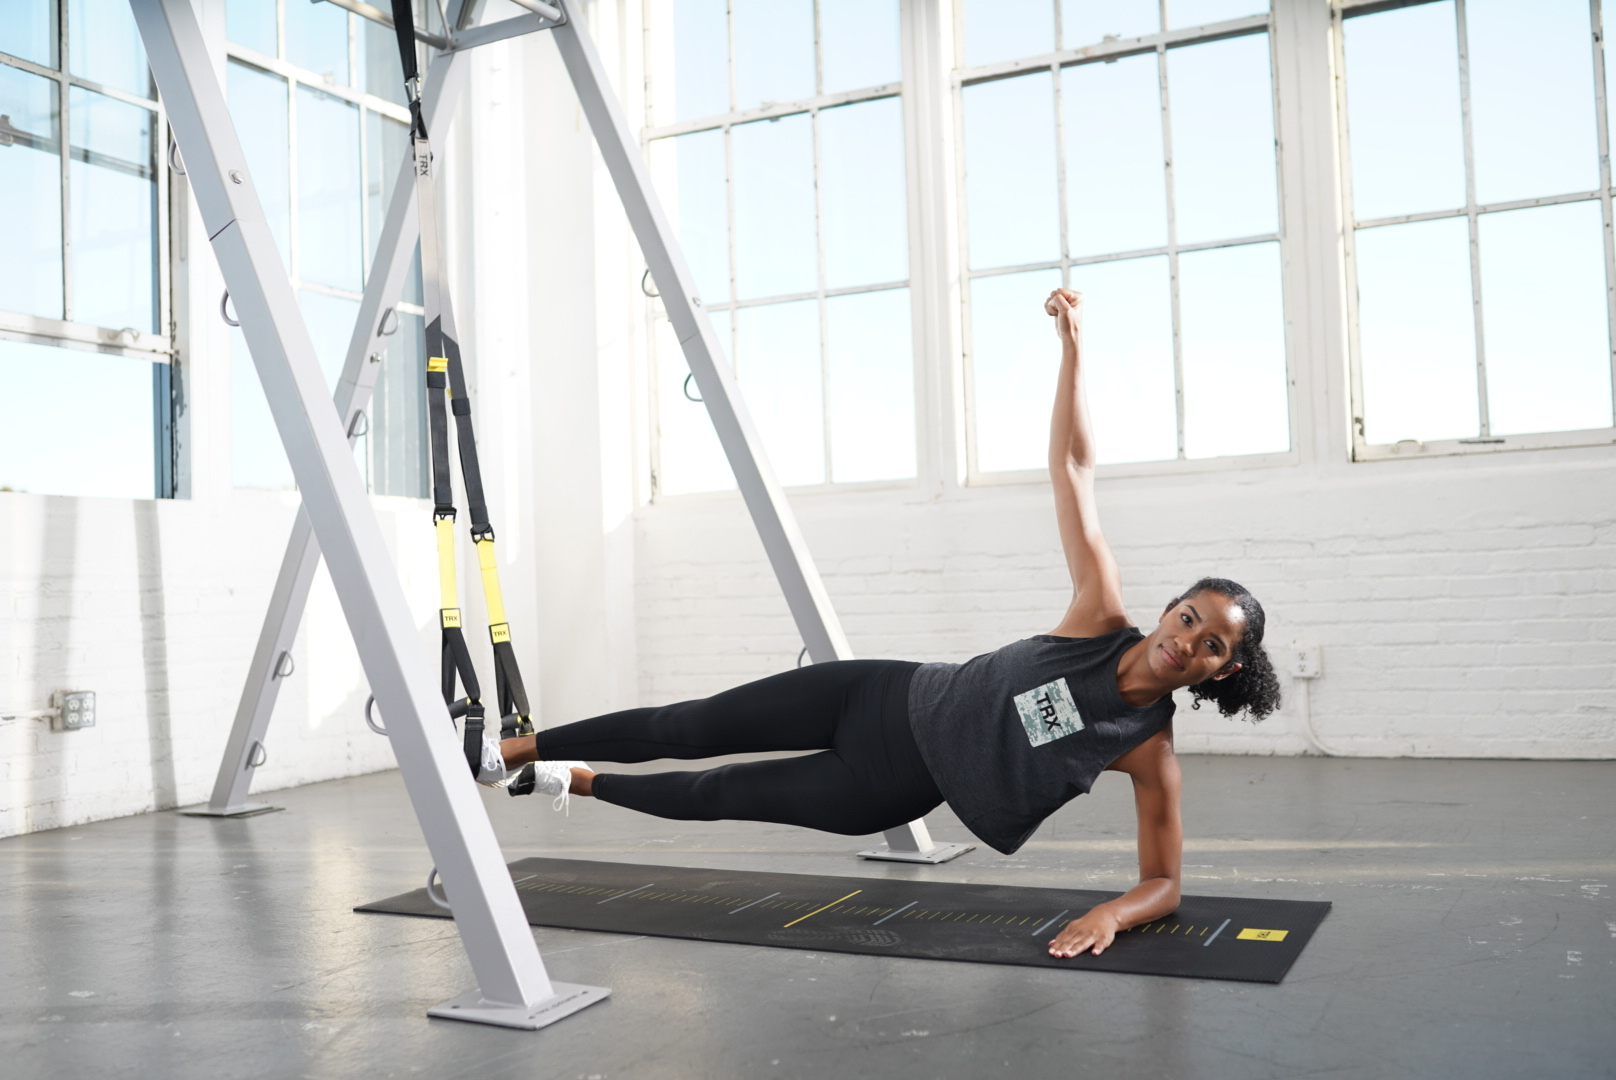 woman in trx side plank with arm up in digicamo cropped tank in a studio space